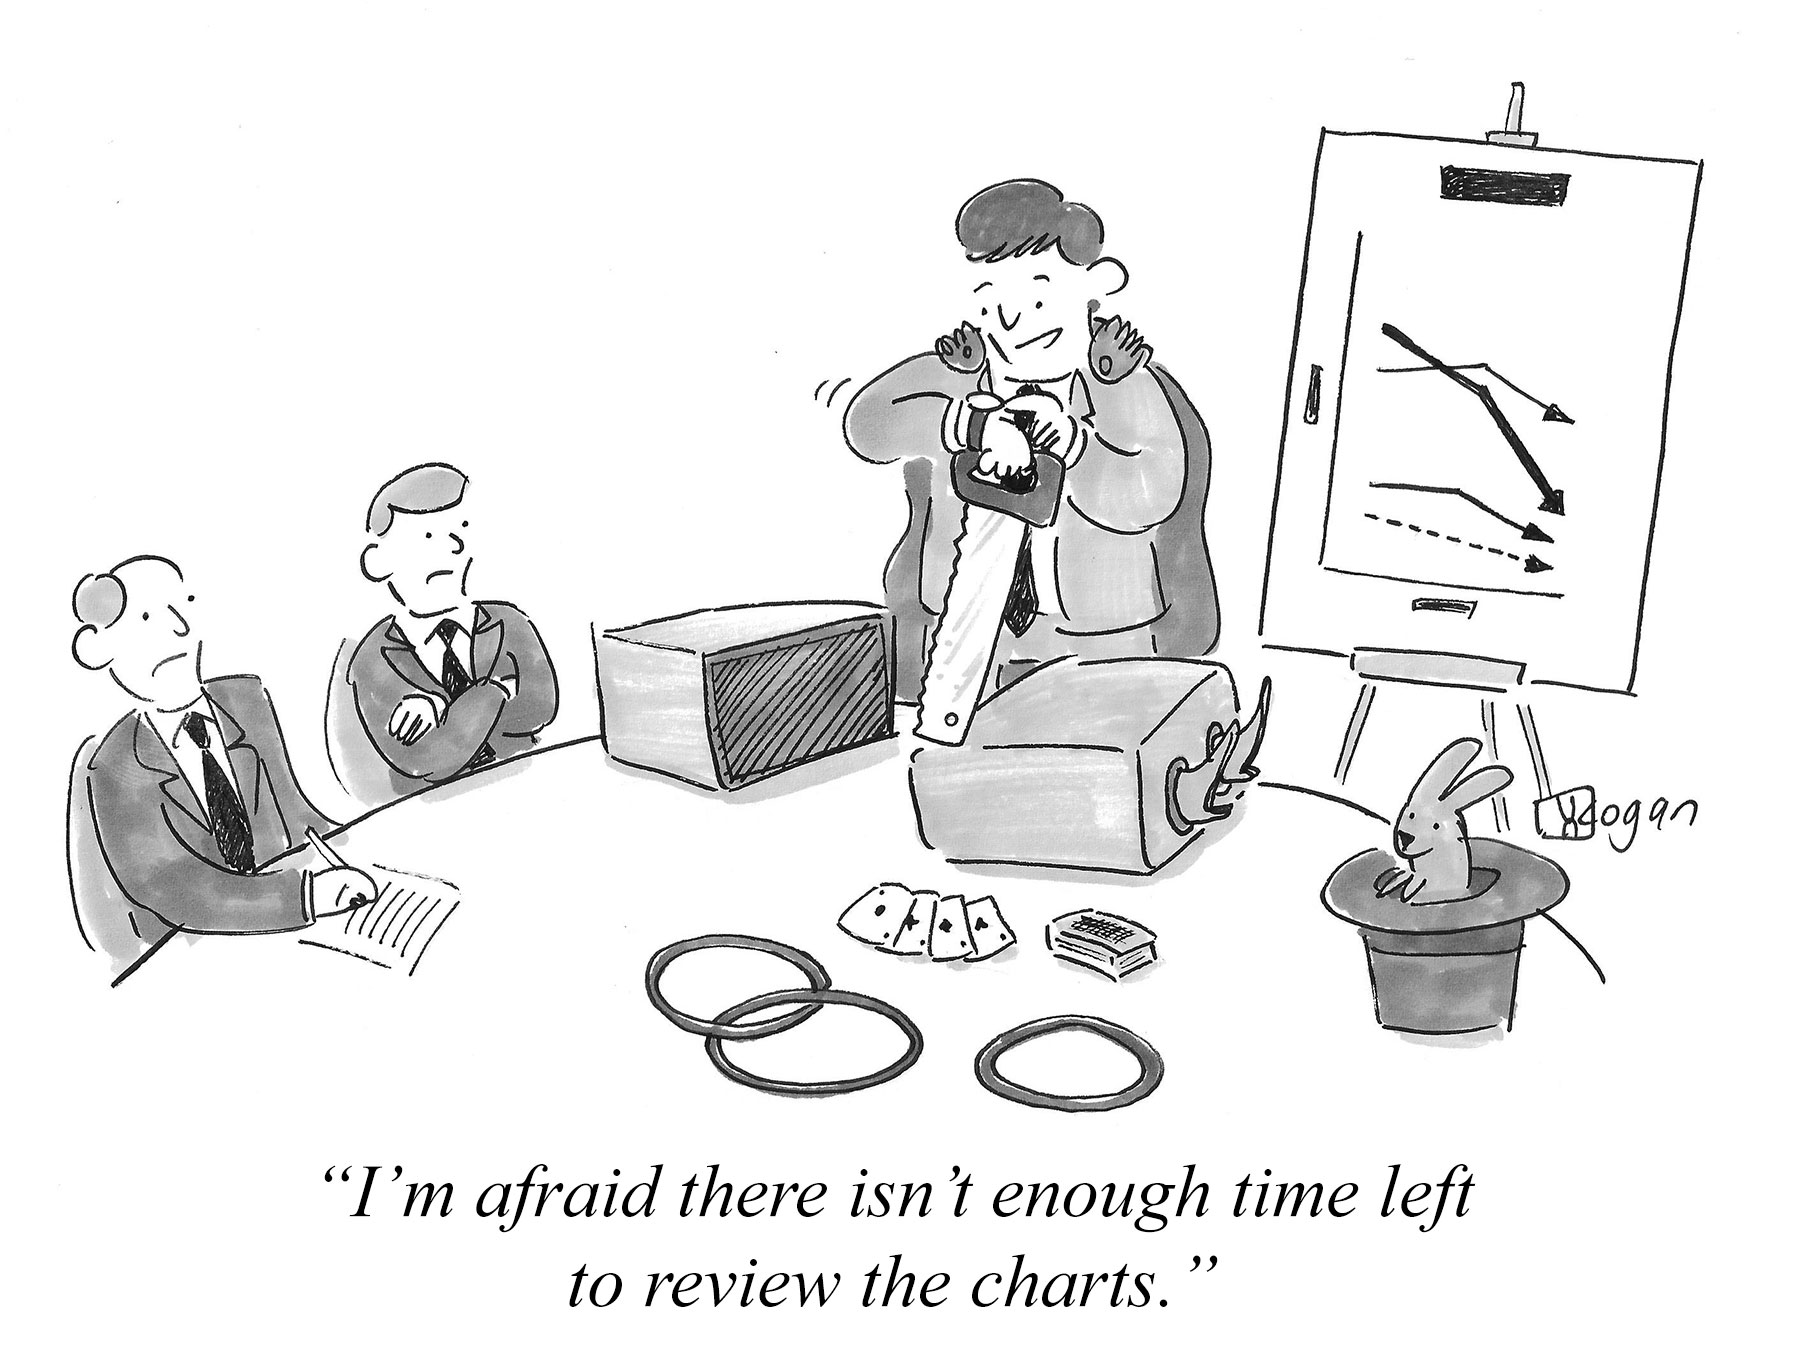 Cartoon about poor performance